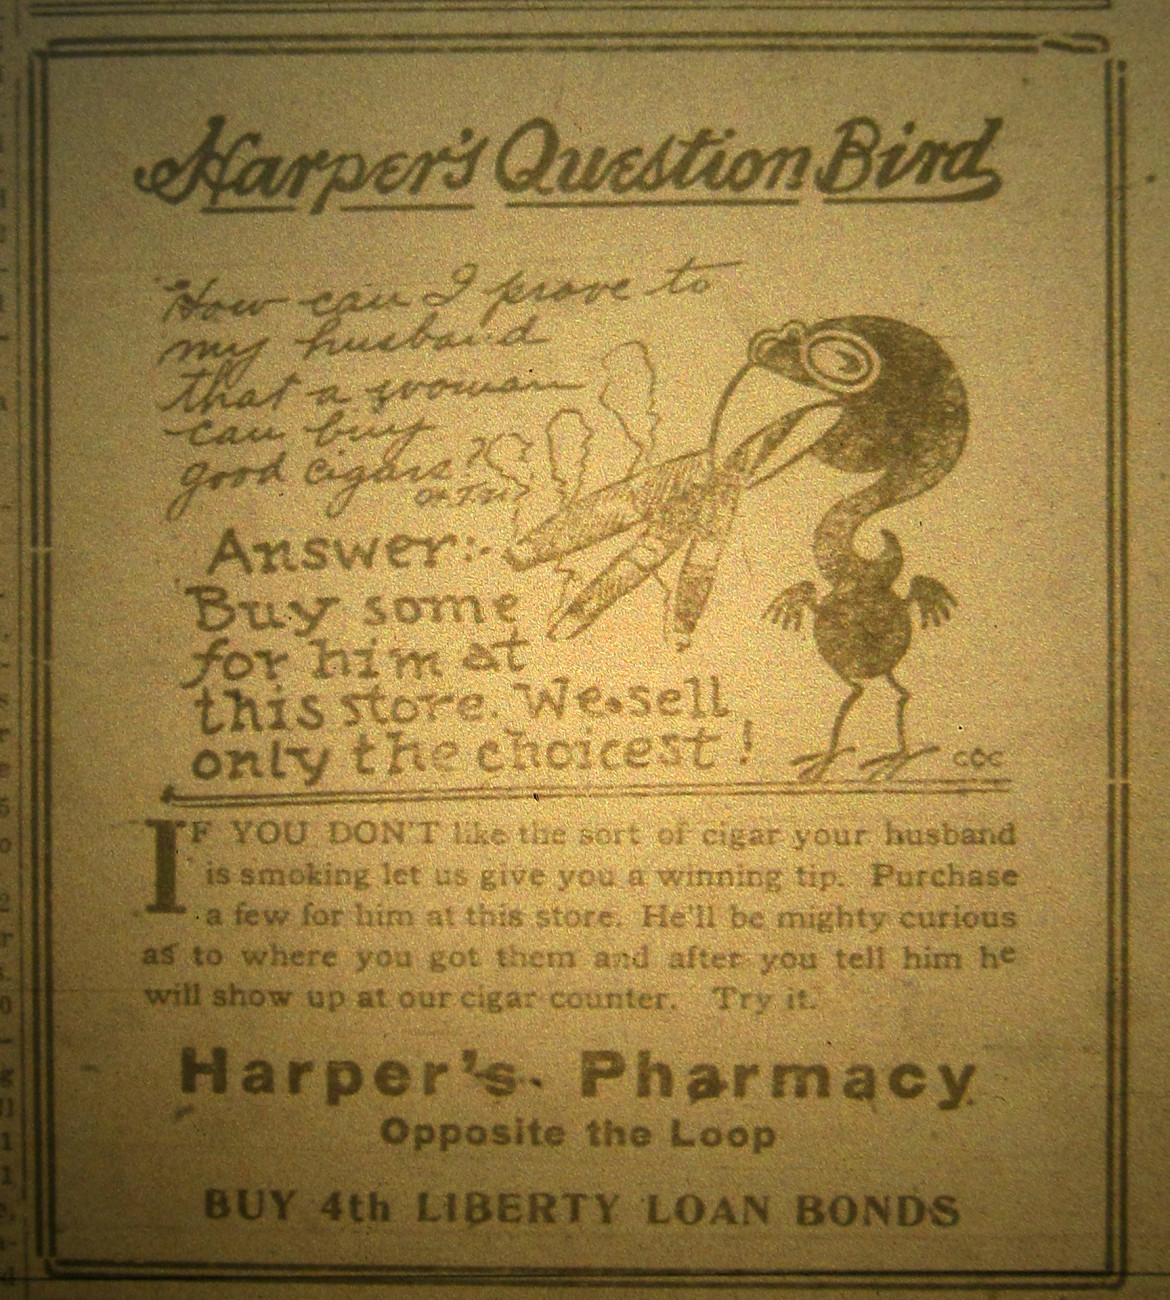 Harper's Pharmacy cigar ad from the 1916 Maplewood News-Champion.